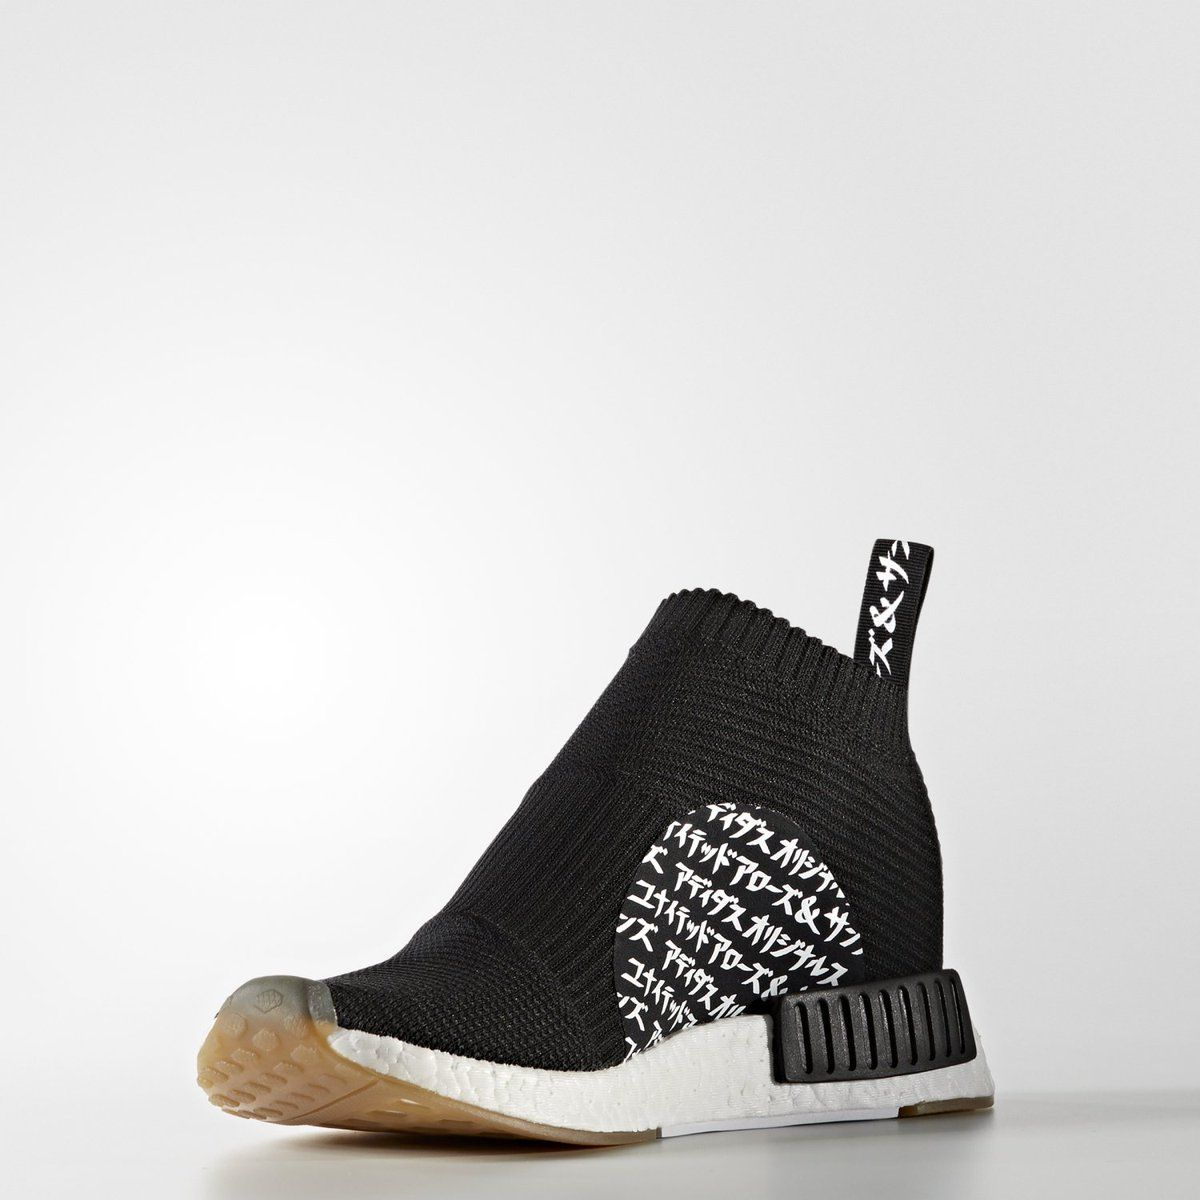 Release des United Arrows & Sons x adidas NMD CS1 ist am 25.03.2017.